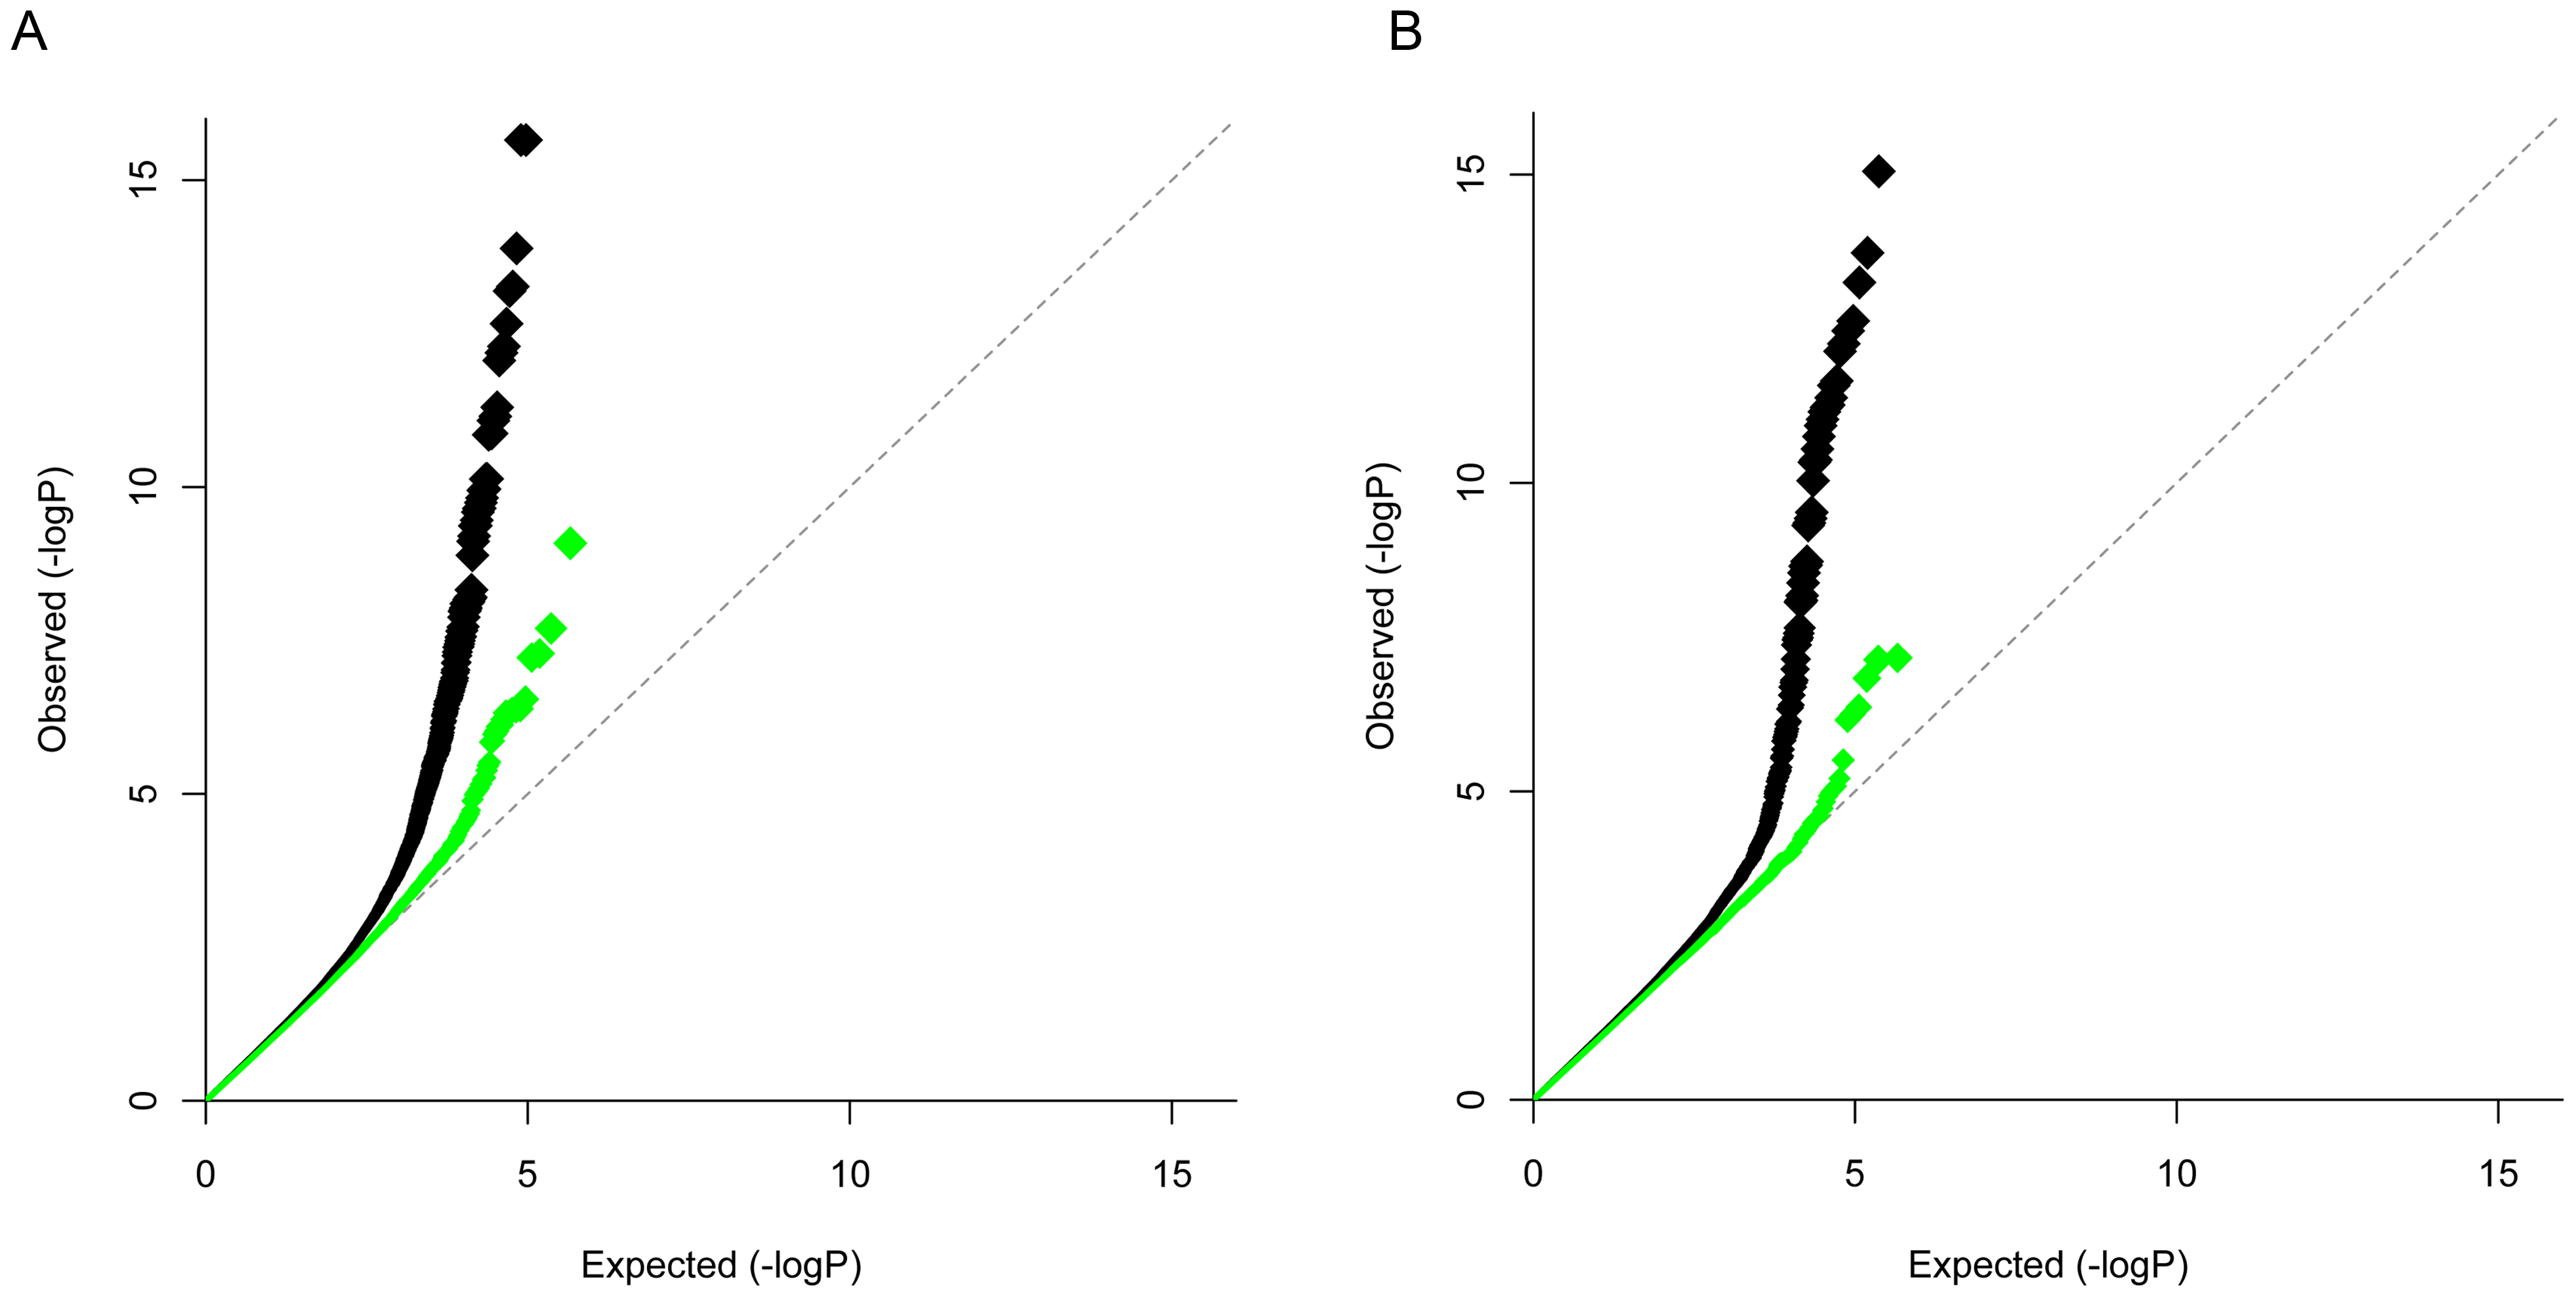 QQ plot of CD-RA meta-analysis by directional method and opposite allelic effect.